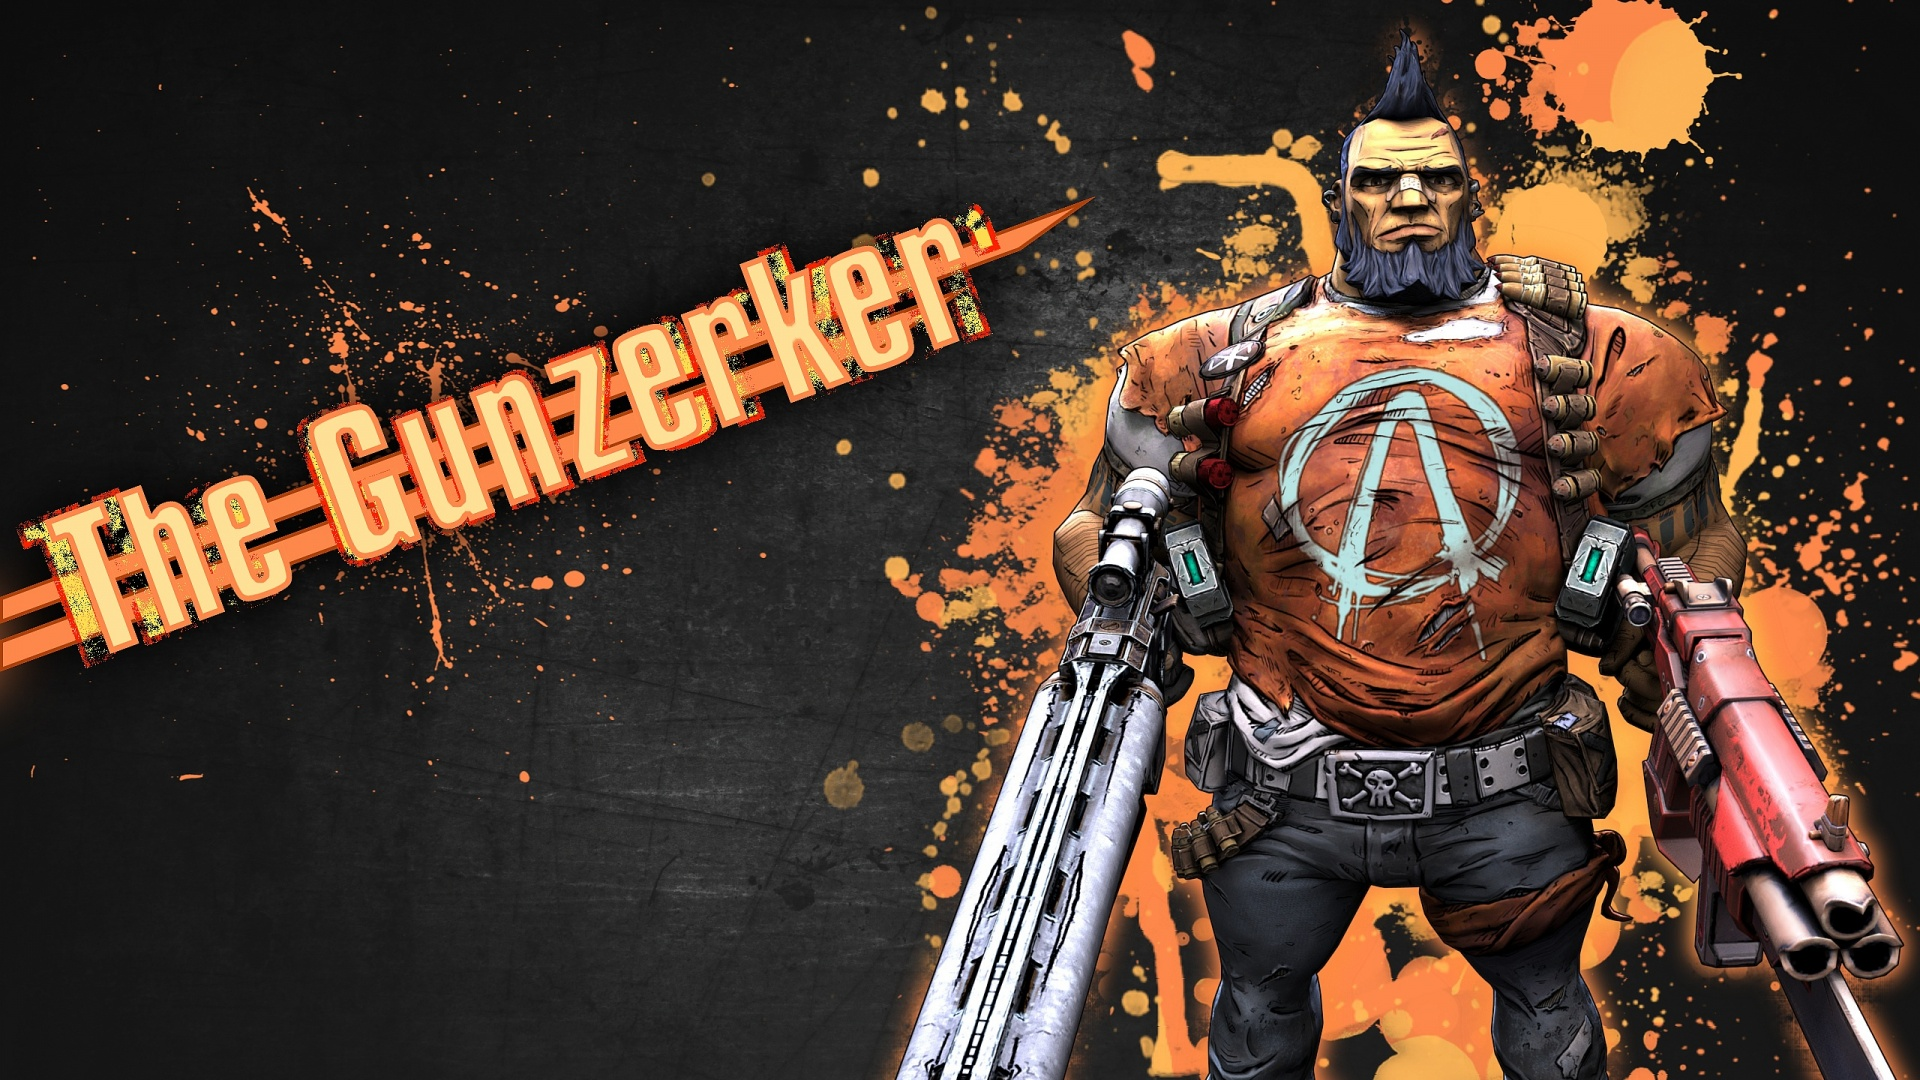 borderlands 2 wallpaper A3